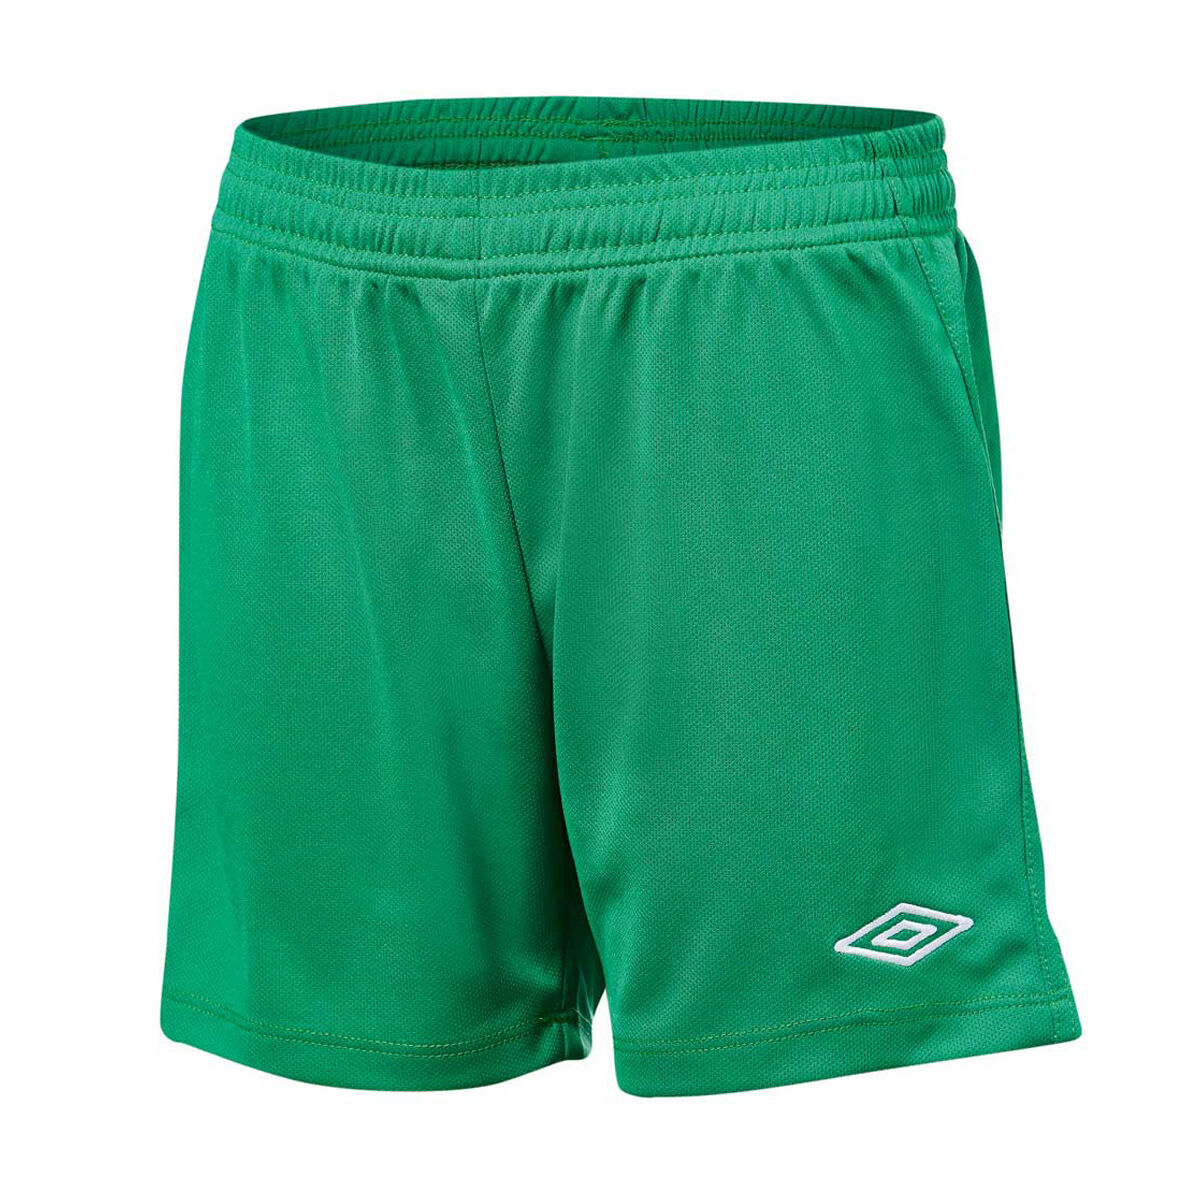 umbro polyester shorts